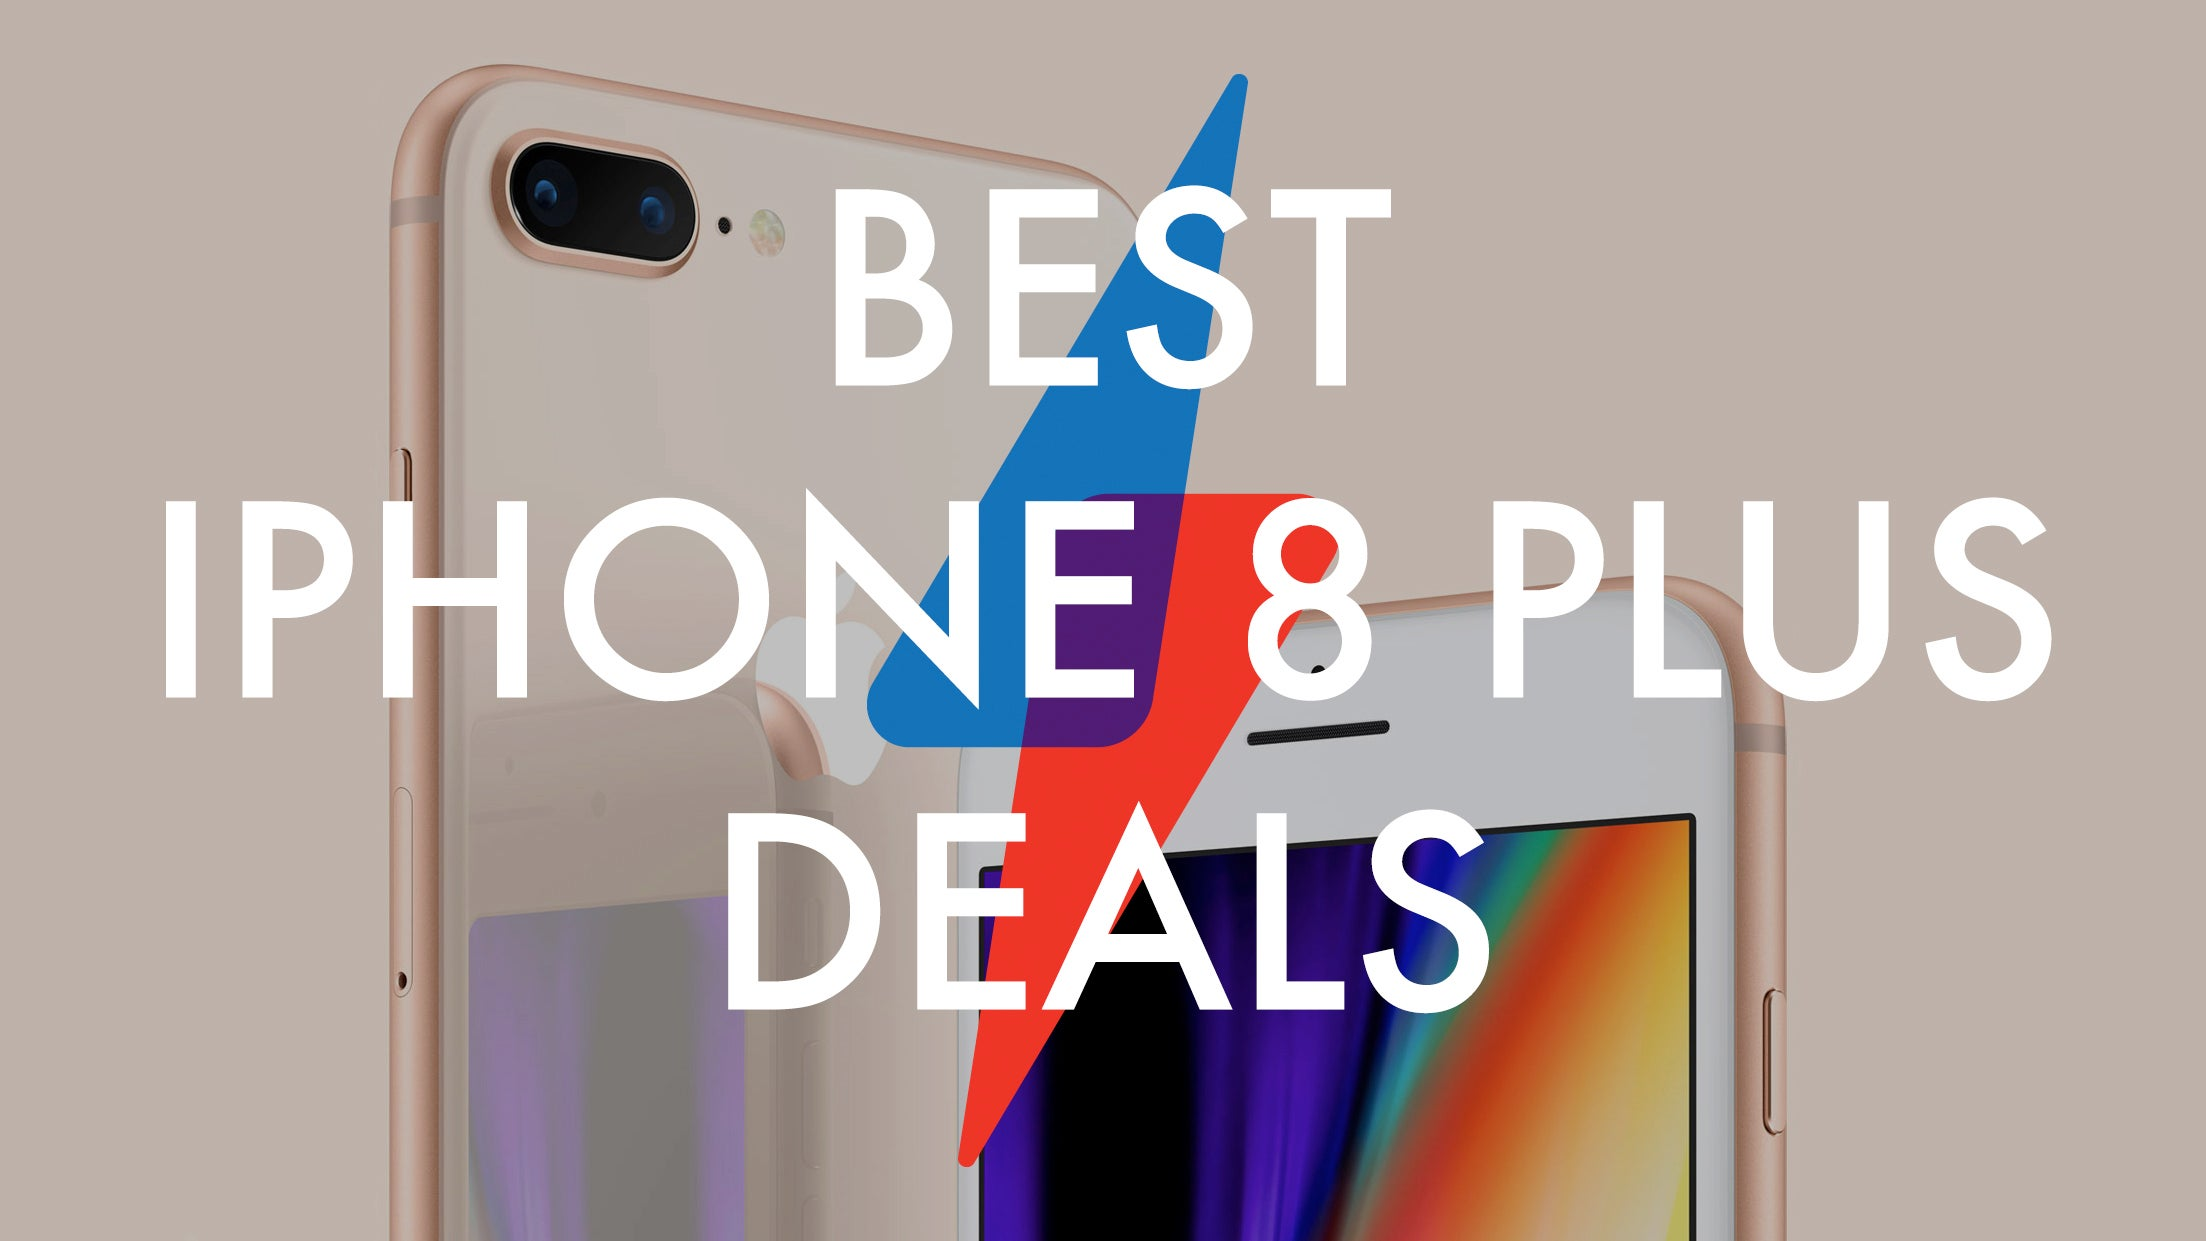 best iphone deals the best iphone 8 plus deals for may 2018 trusted reviews 10253